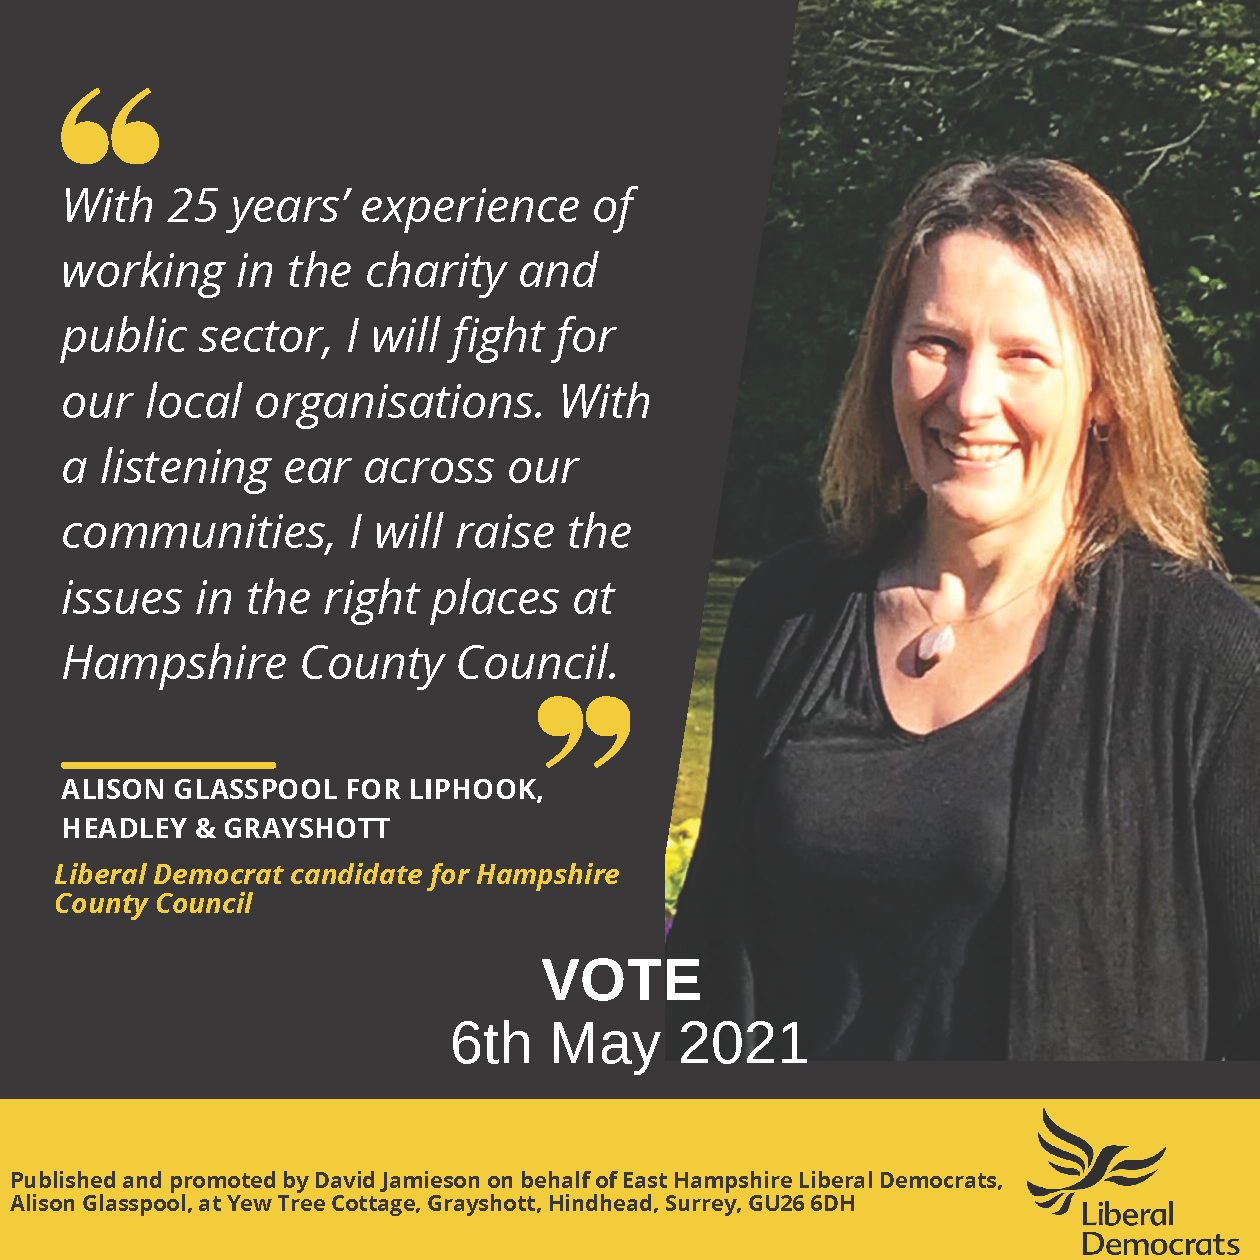 Alison_LGH_campaign.png